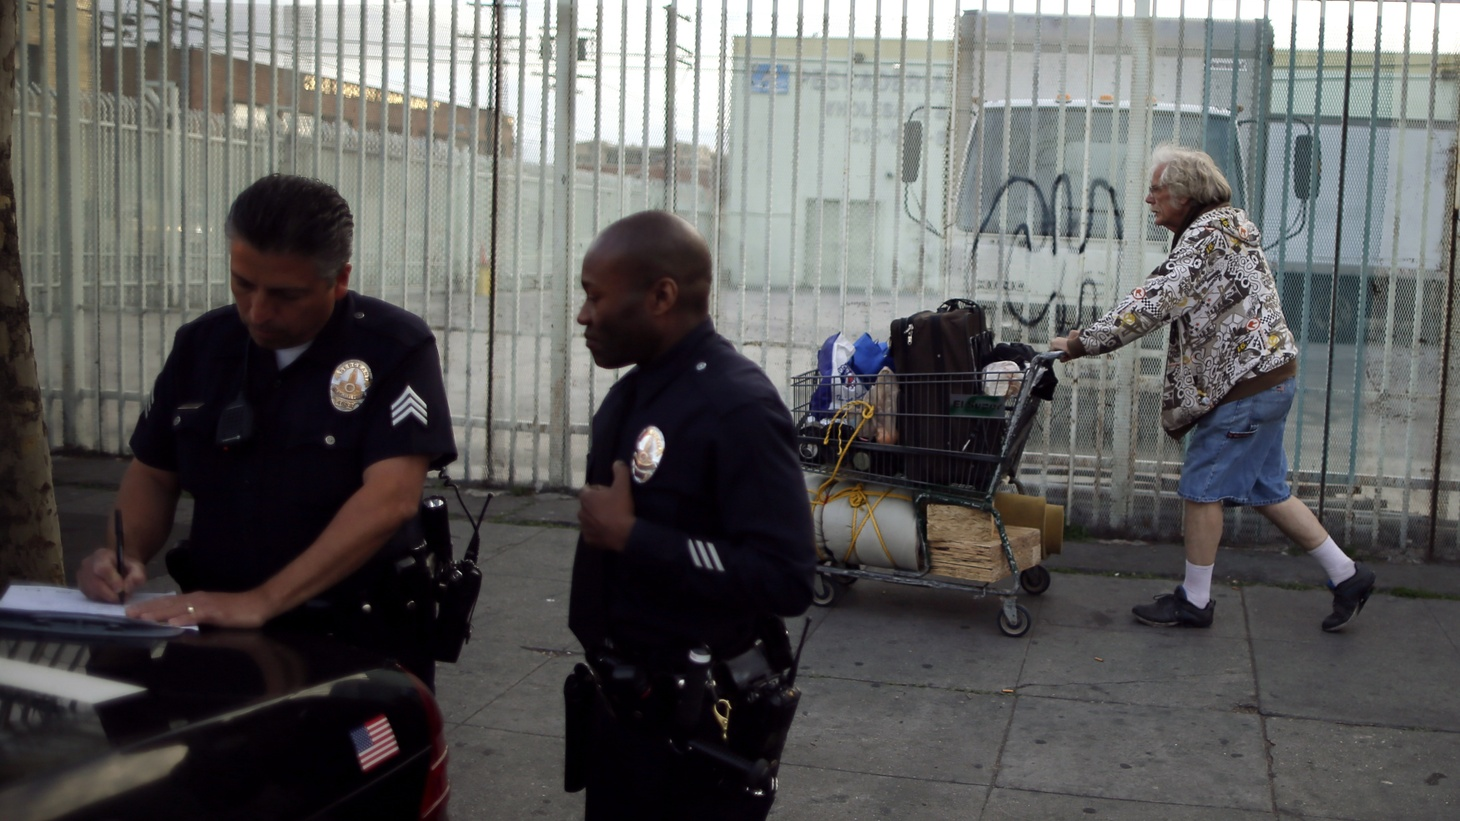 LAPD Sergeant Mark Wright (L) makes notes on downtown Los Angeles' Skid Row,as a homeless man walks by.